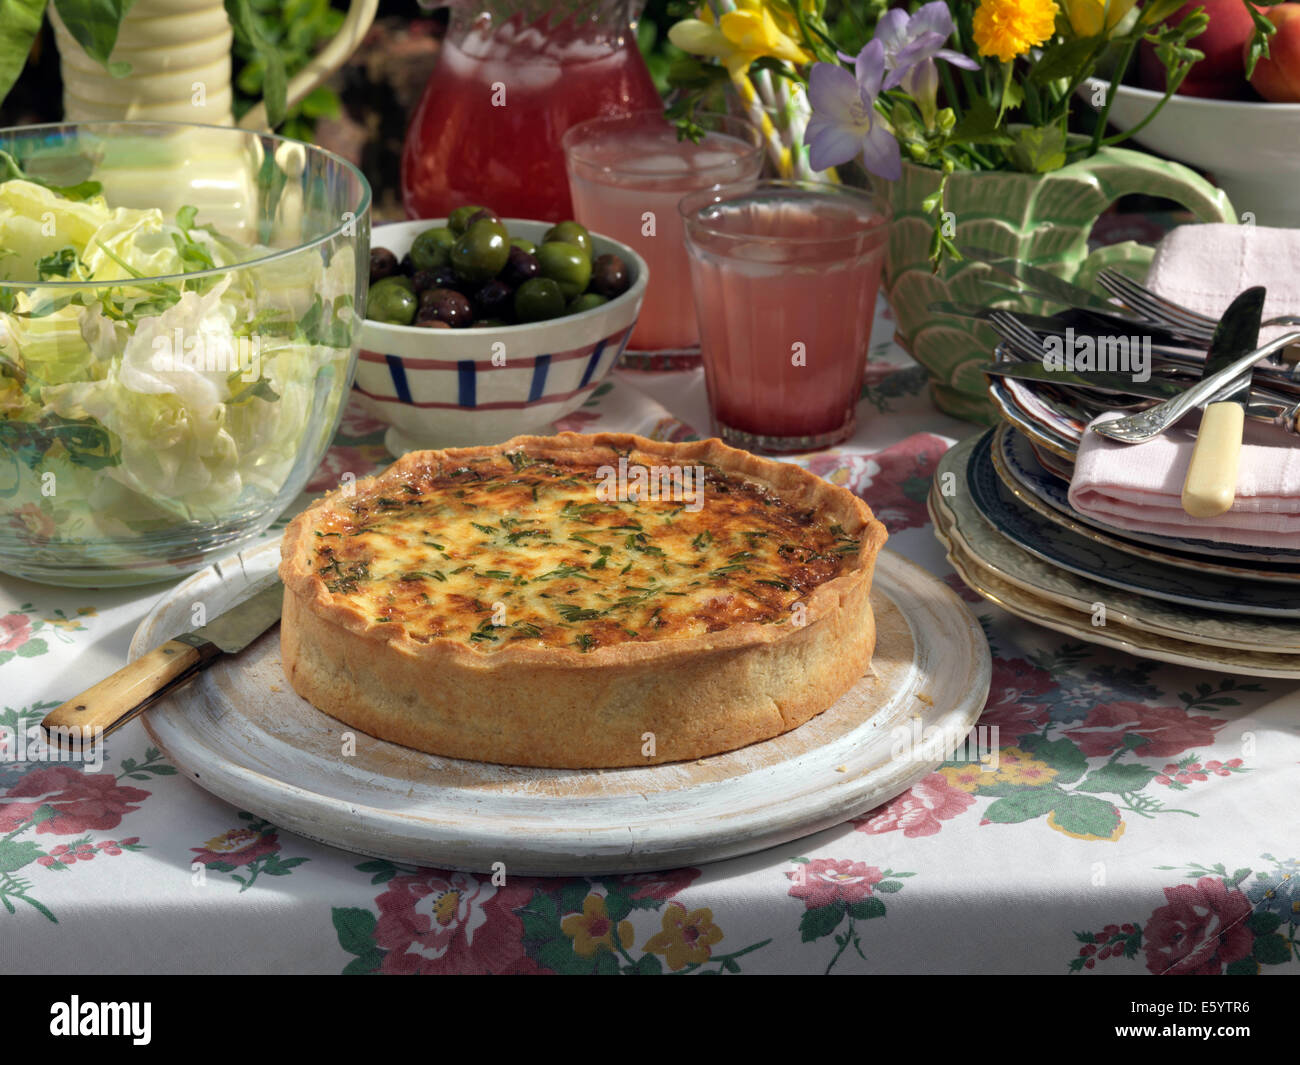 Quiche - Stock Image